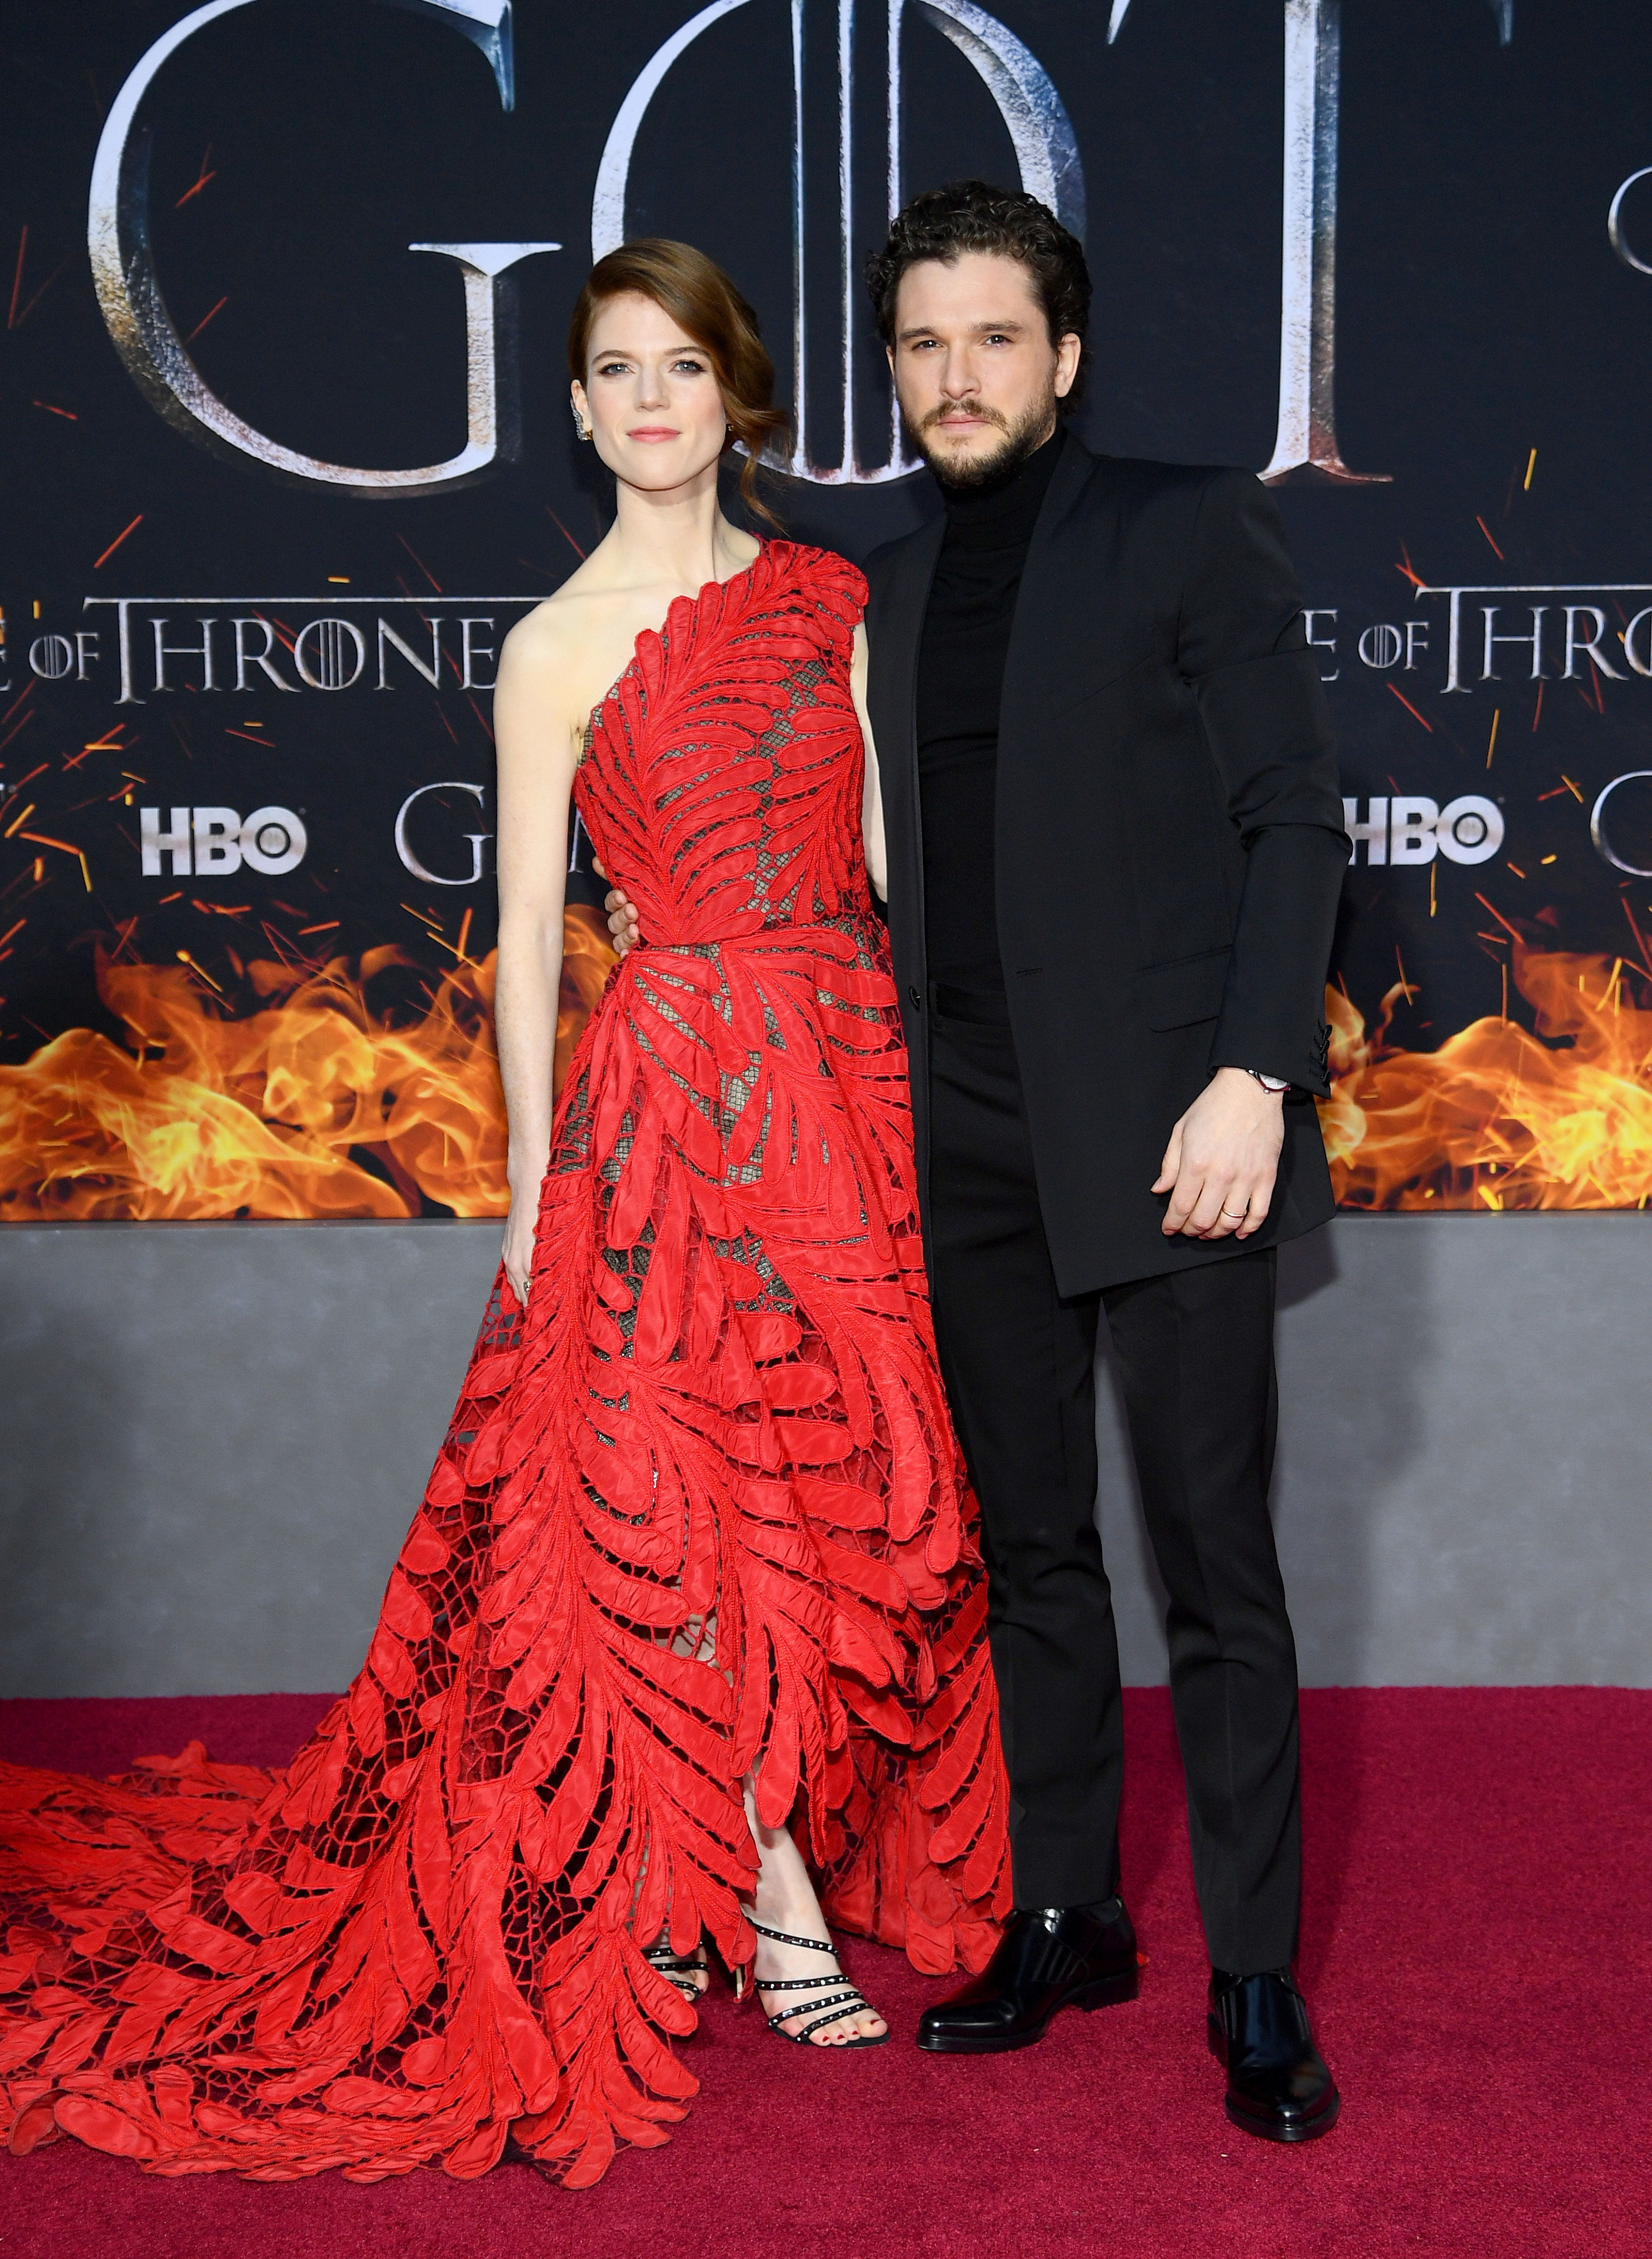 NEW YORK, NEW YORK - APRIL 03: Rose Leslie and Kit Harington attend the 'Game Of Thrones' Season 8 Premiere on April 03, 2019 in New York City. (Photo by Dimitrios Kambouris/Getty Images)